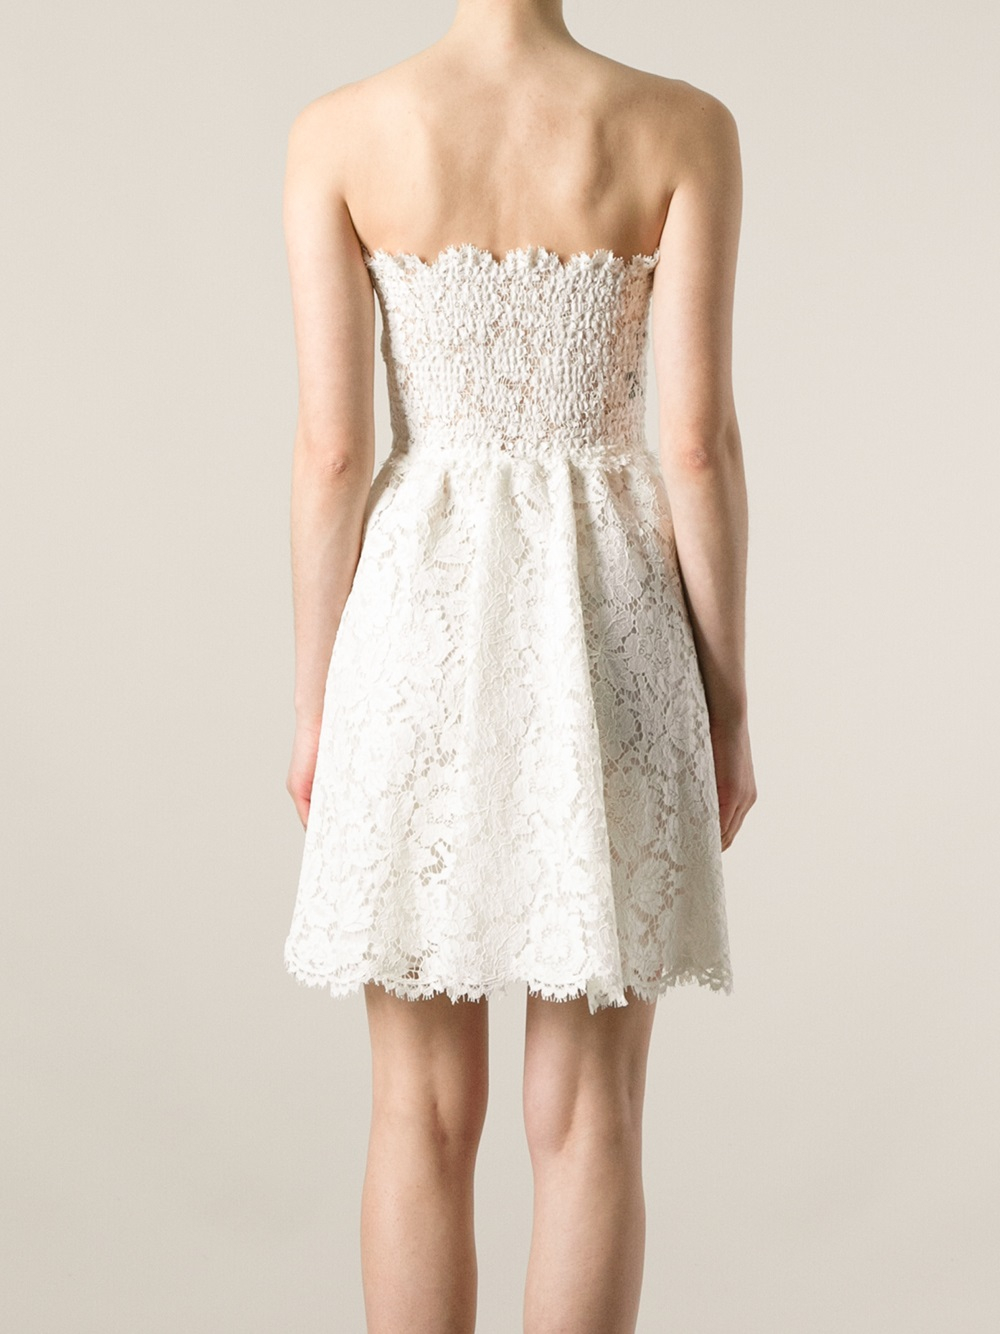 5717e54376 Lyst - Valentino Strapless Floral Lace Dress in White